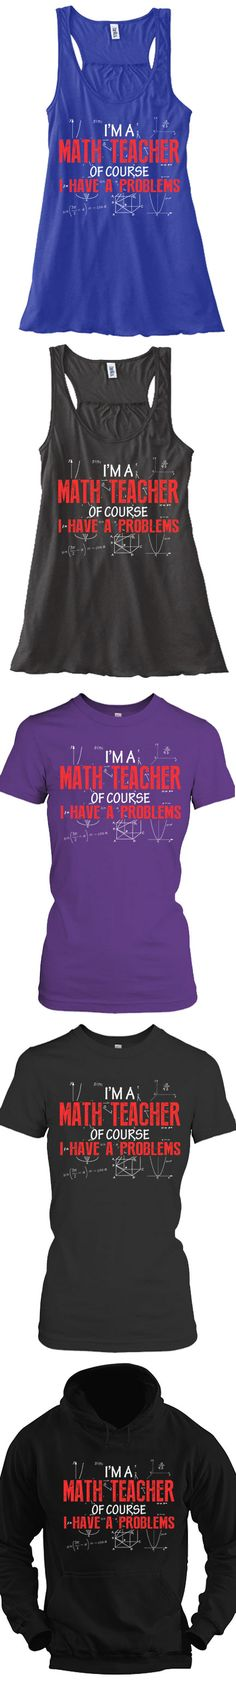 Are You A Math Teacher? Then Click The Image To Buy It Now or Tag Someone You Want To Buy This For.